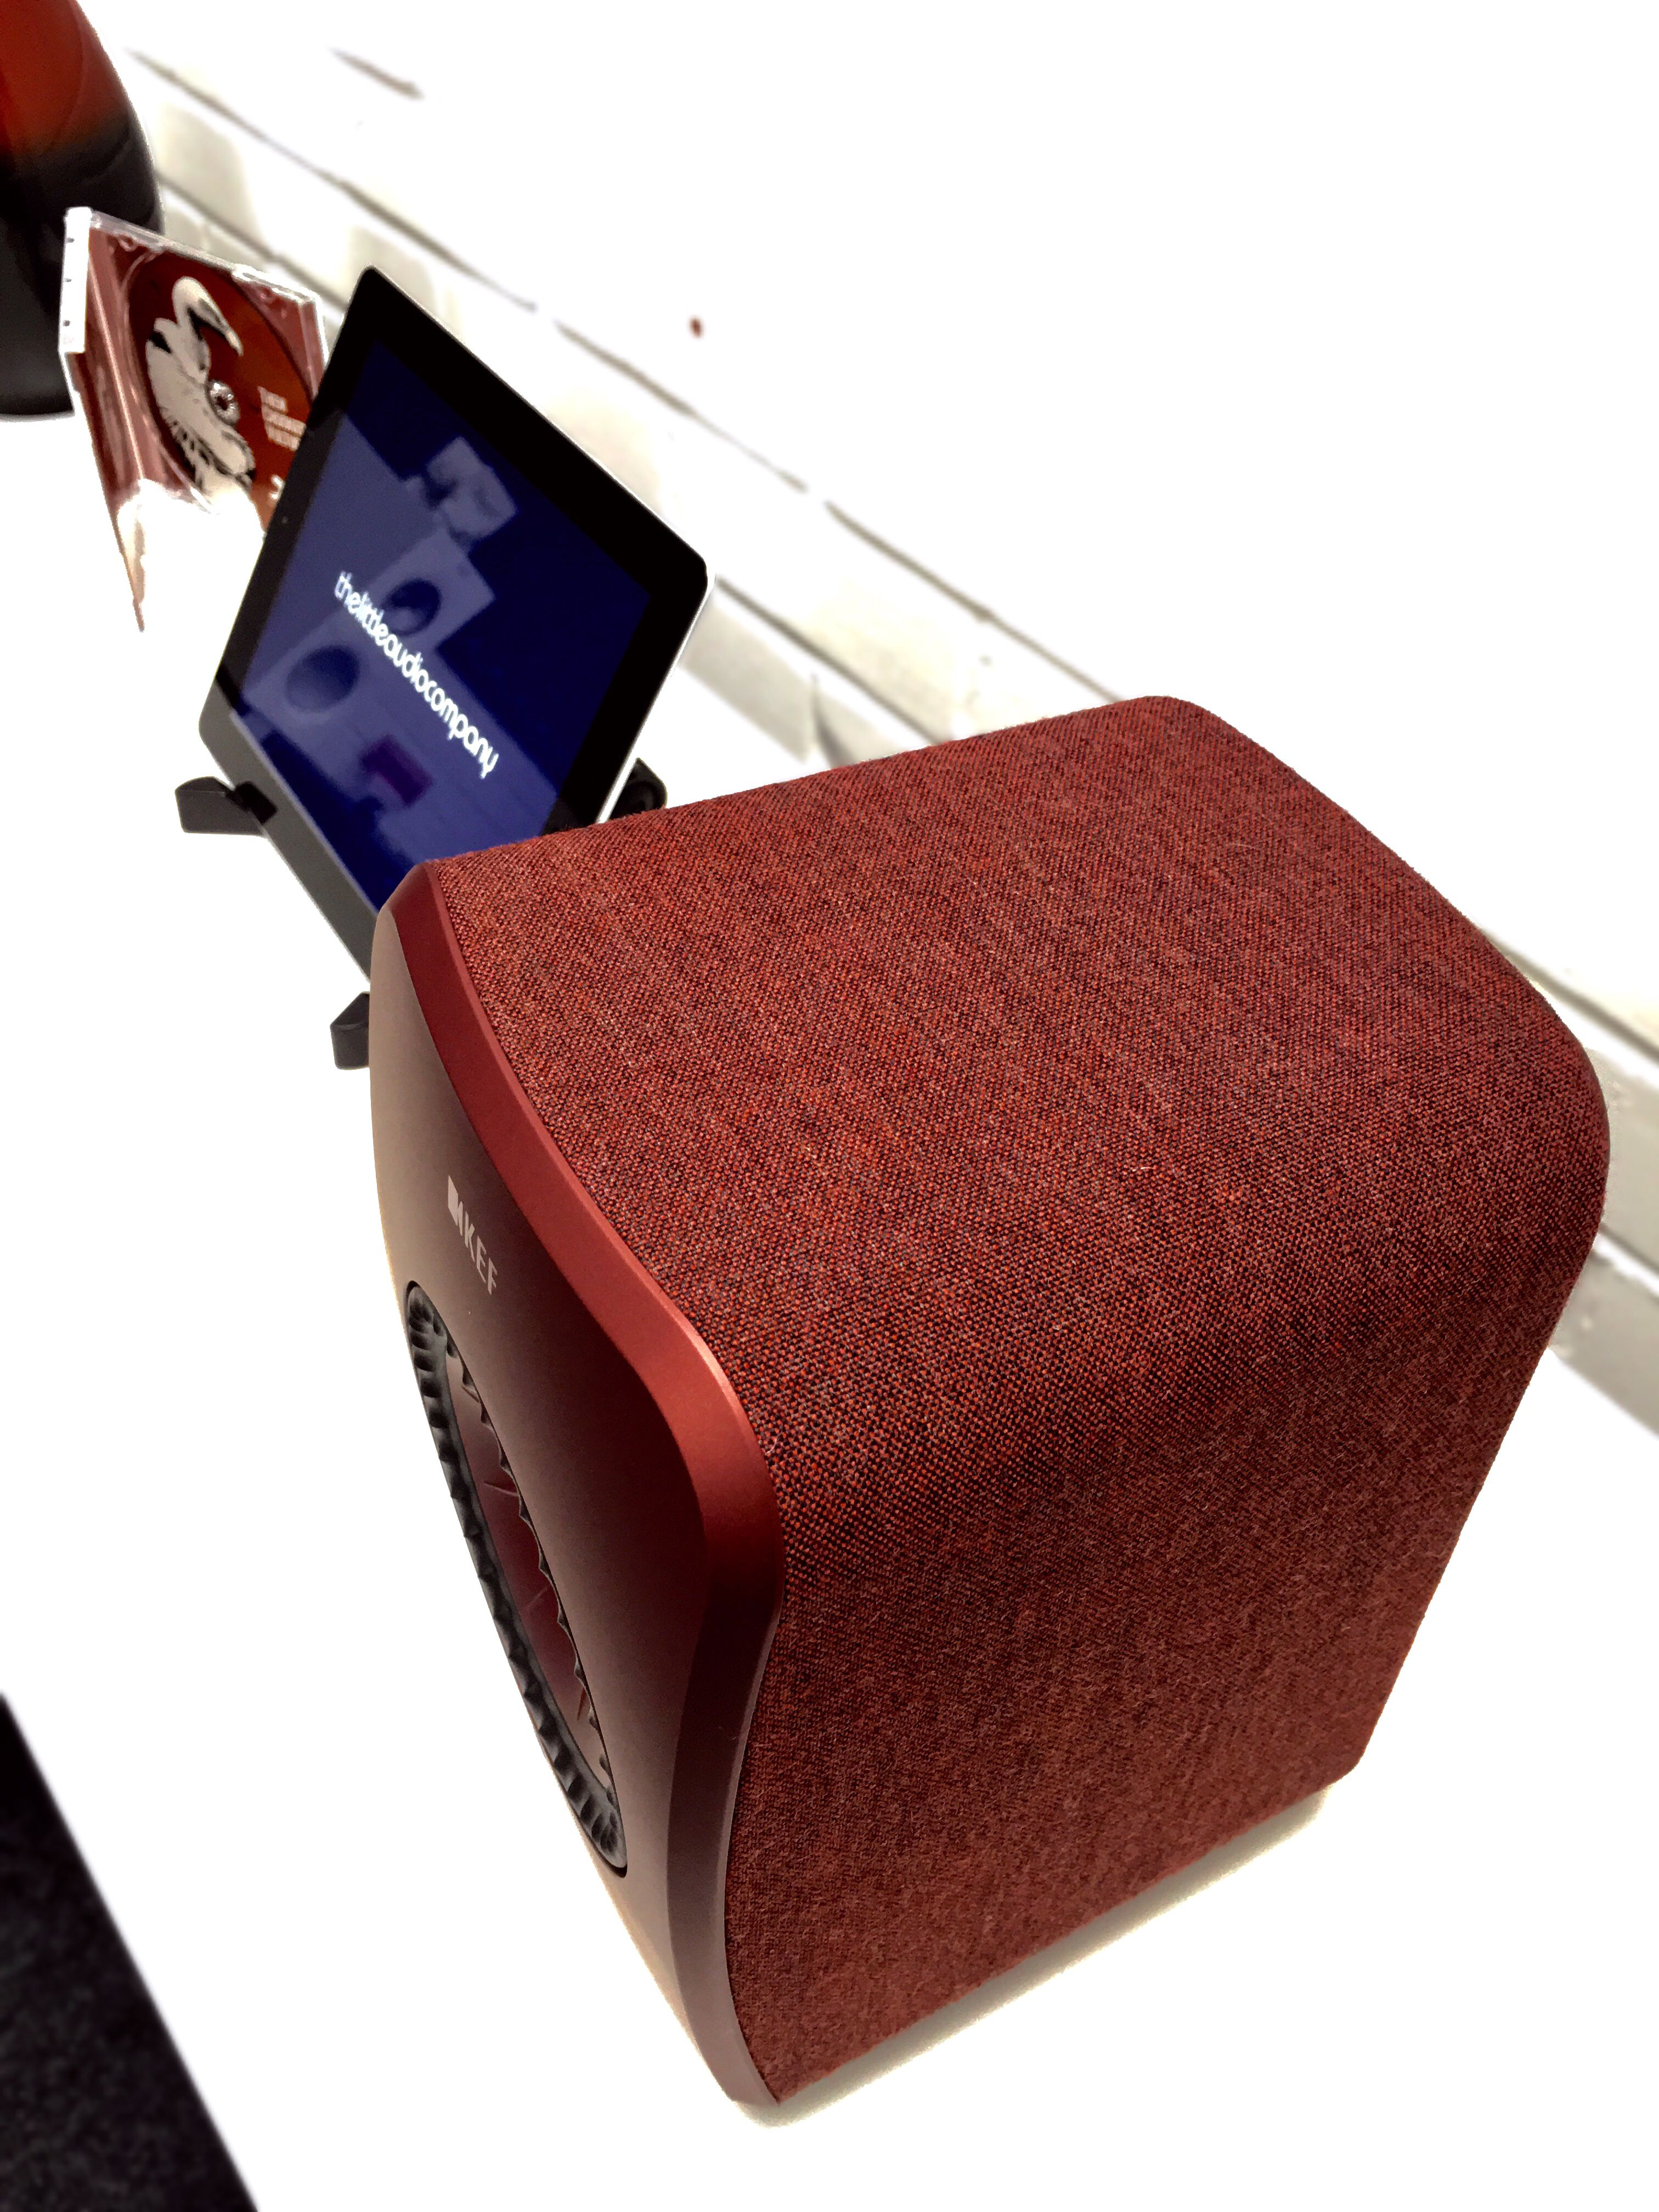 The textured fabric finish of the KEF LSX loudspeakers, a